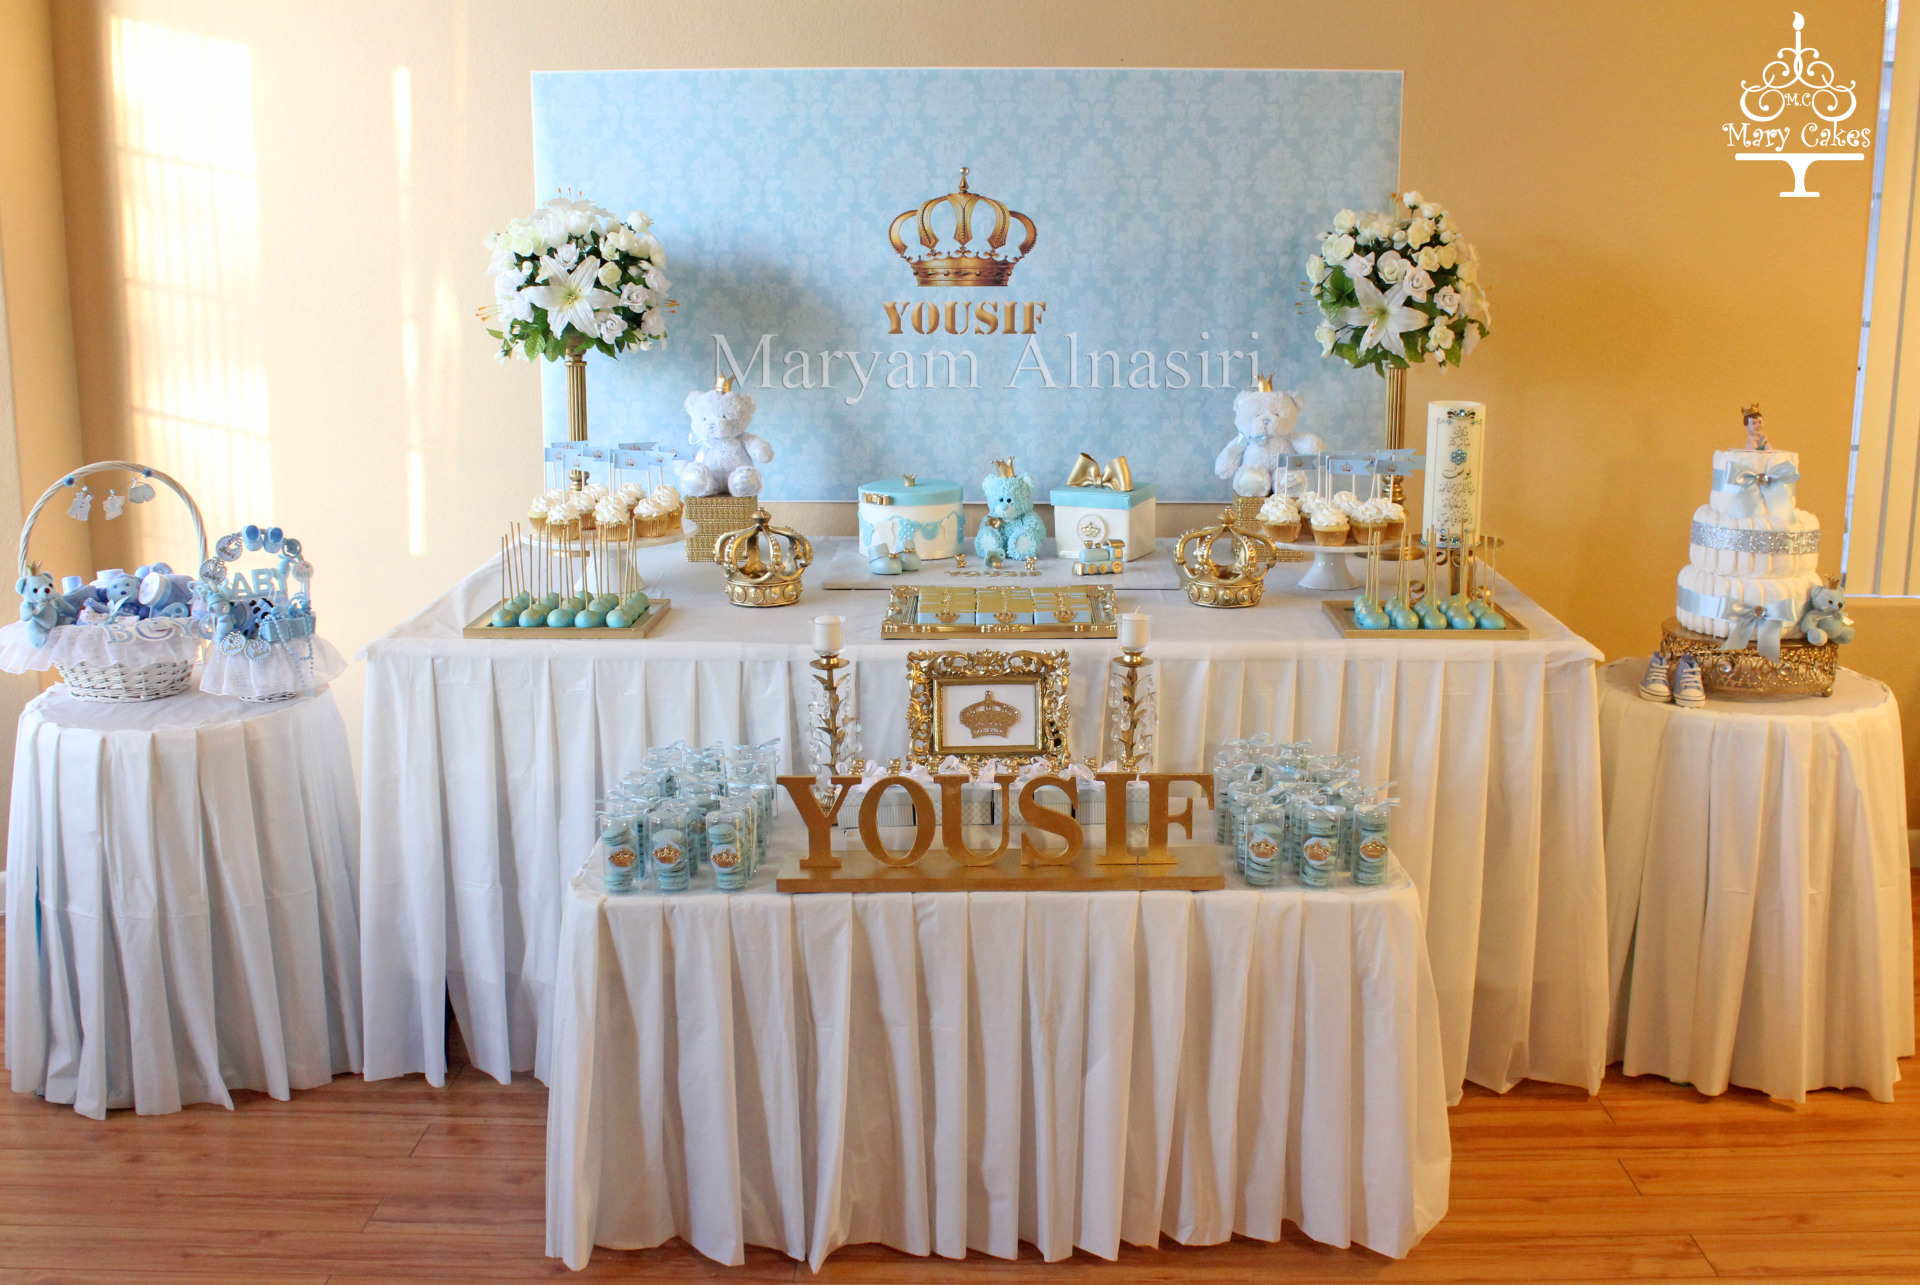 Royal baby blue & Gold bear theme